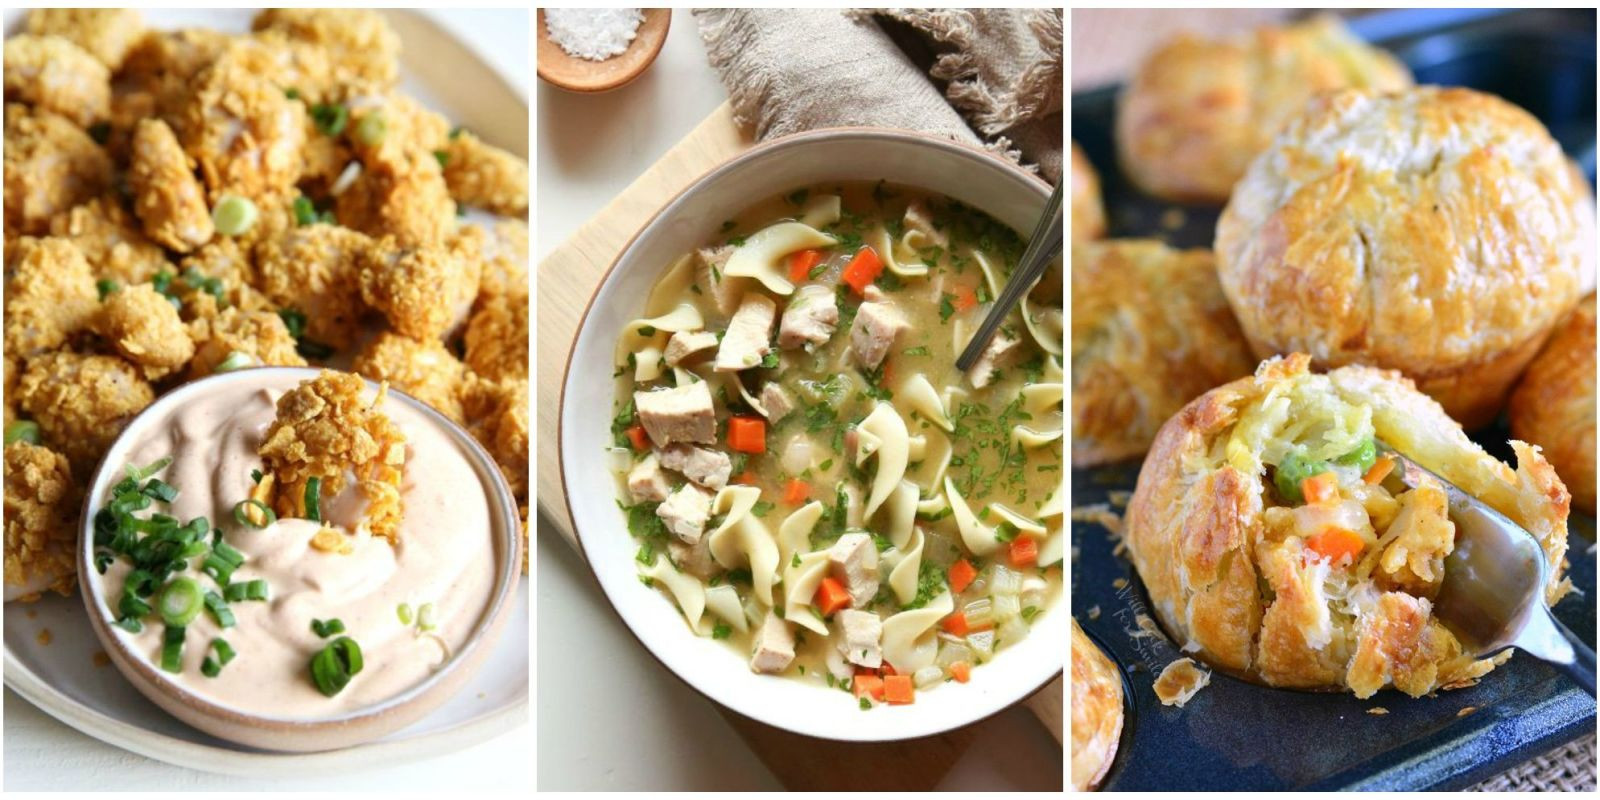 Chicken Recipes For Kids  15 Easy Chicken Recipes For Kids Best Kid Friendly